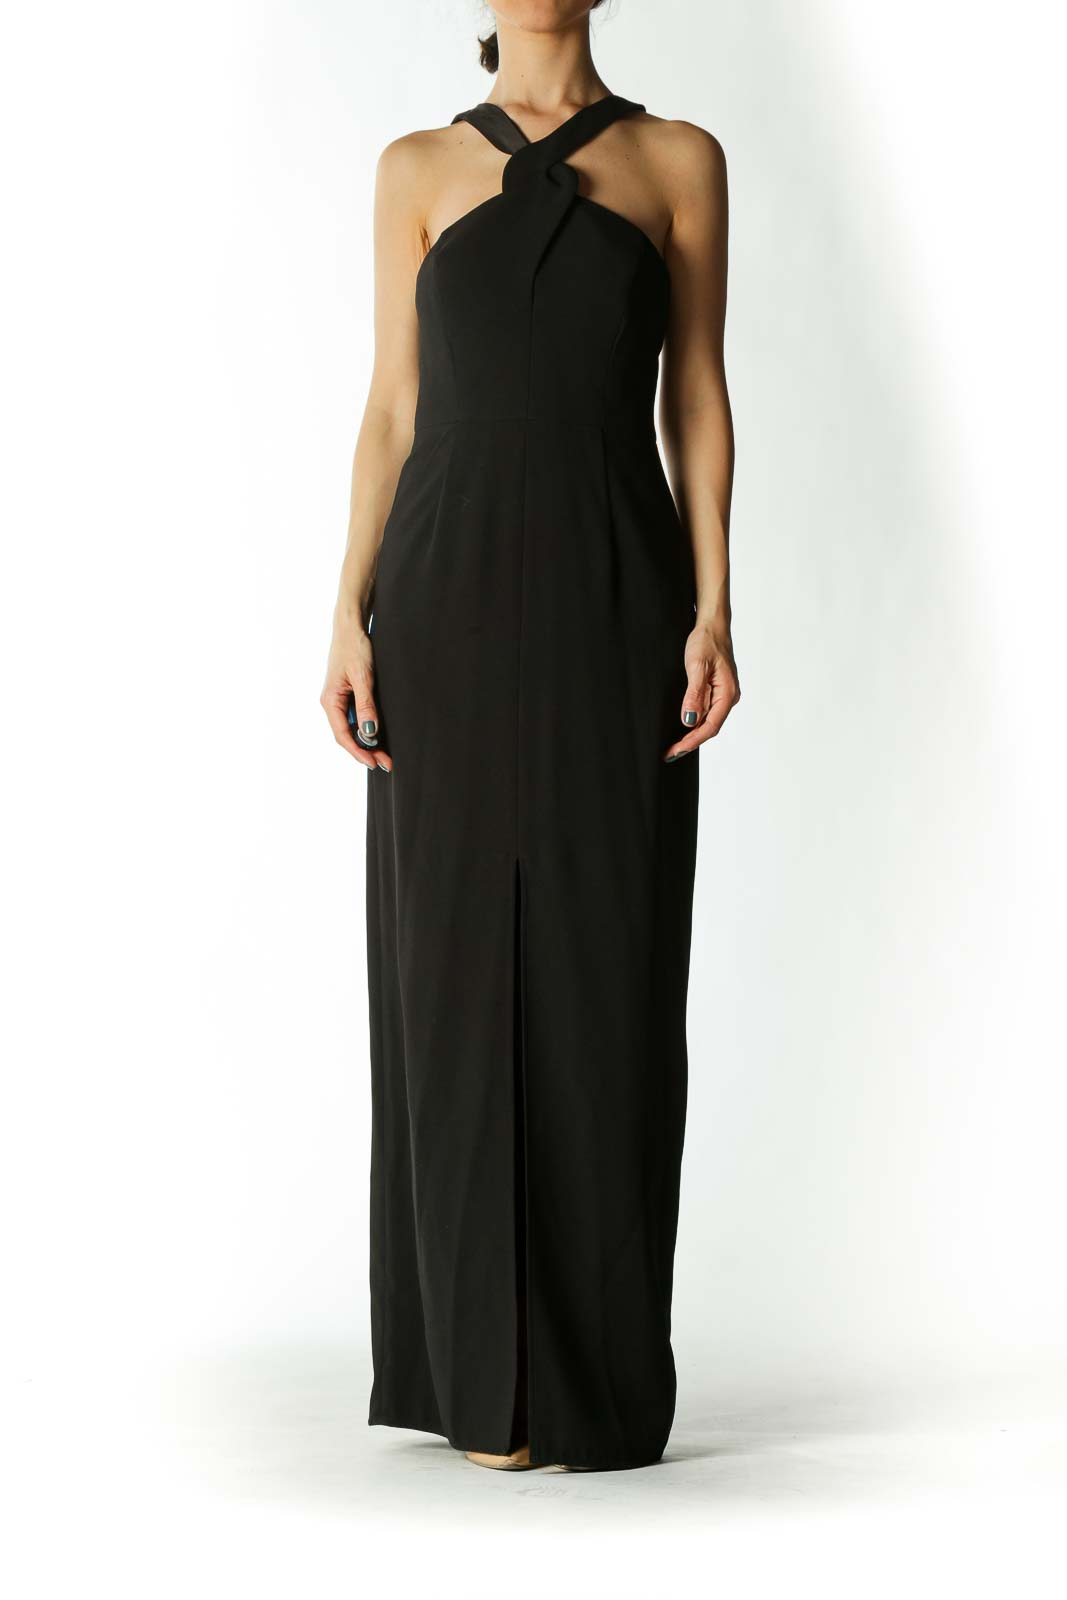 Black Cross-Back Narrow V-neck Evening Dress with Slit